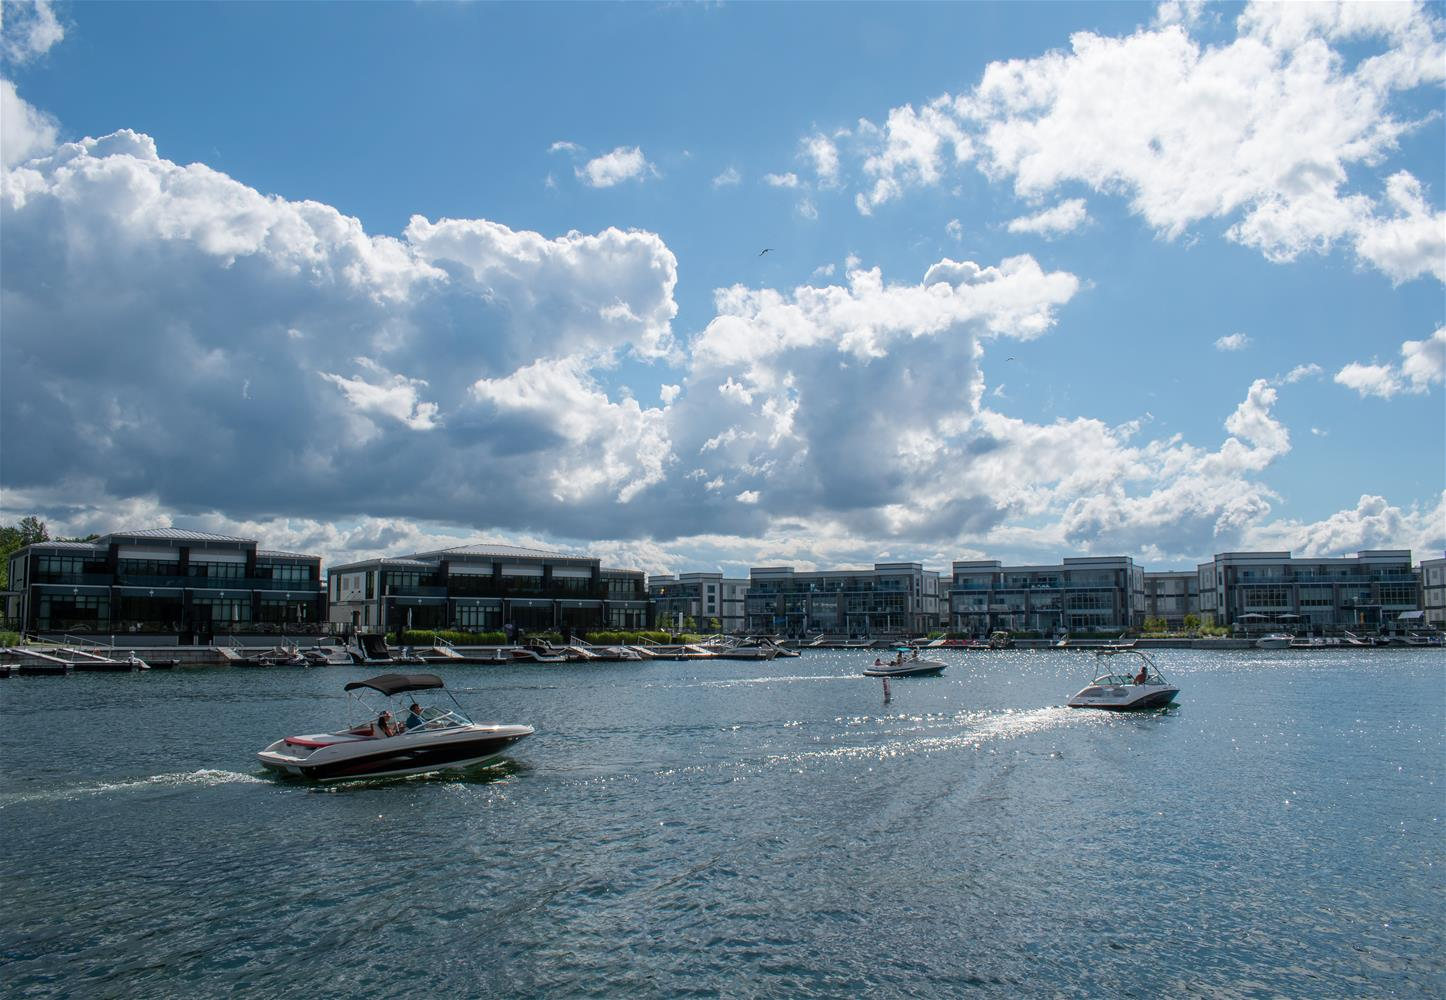 FridayHarbourboats_TourismBarrie